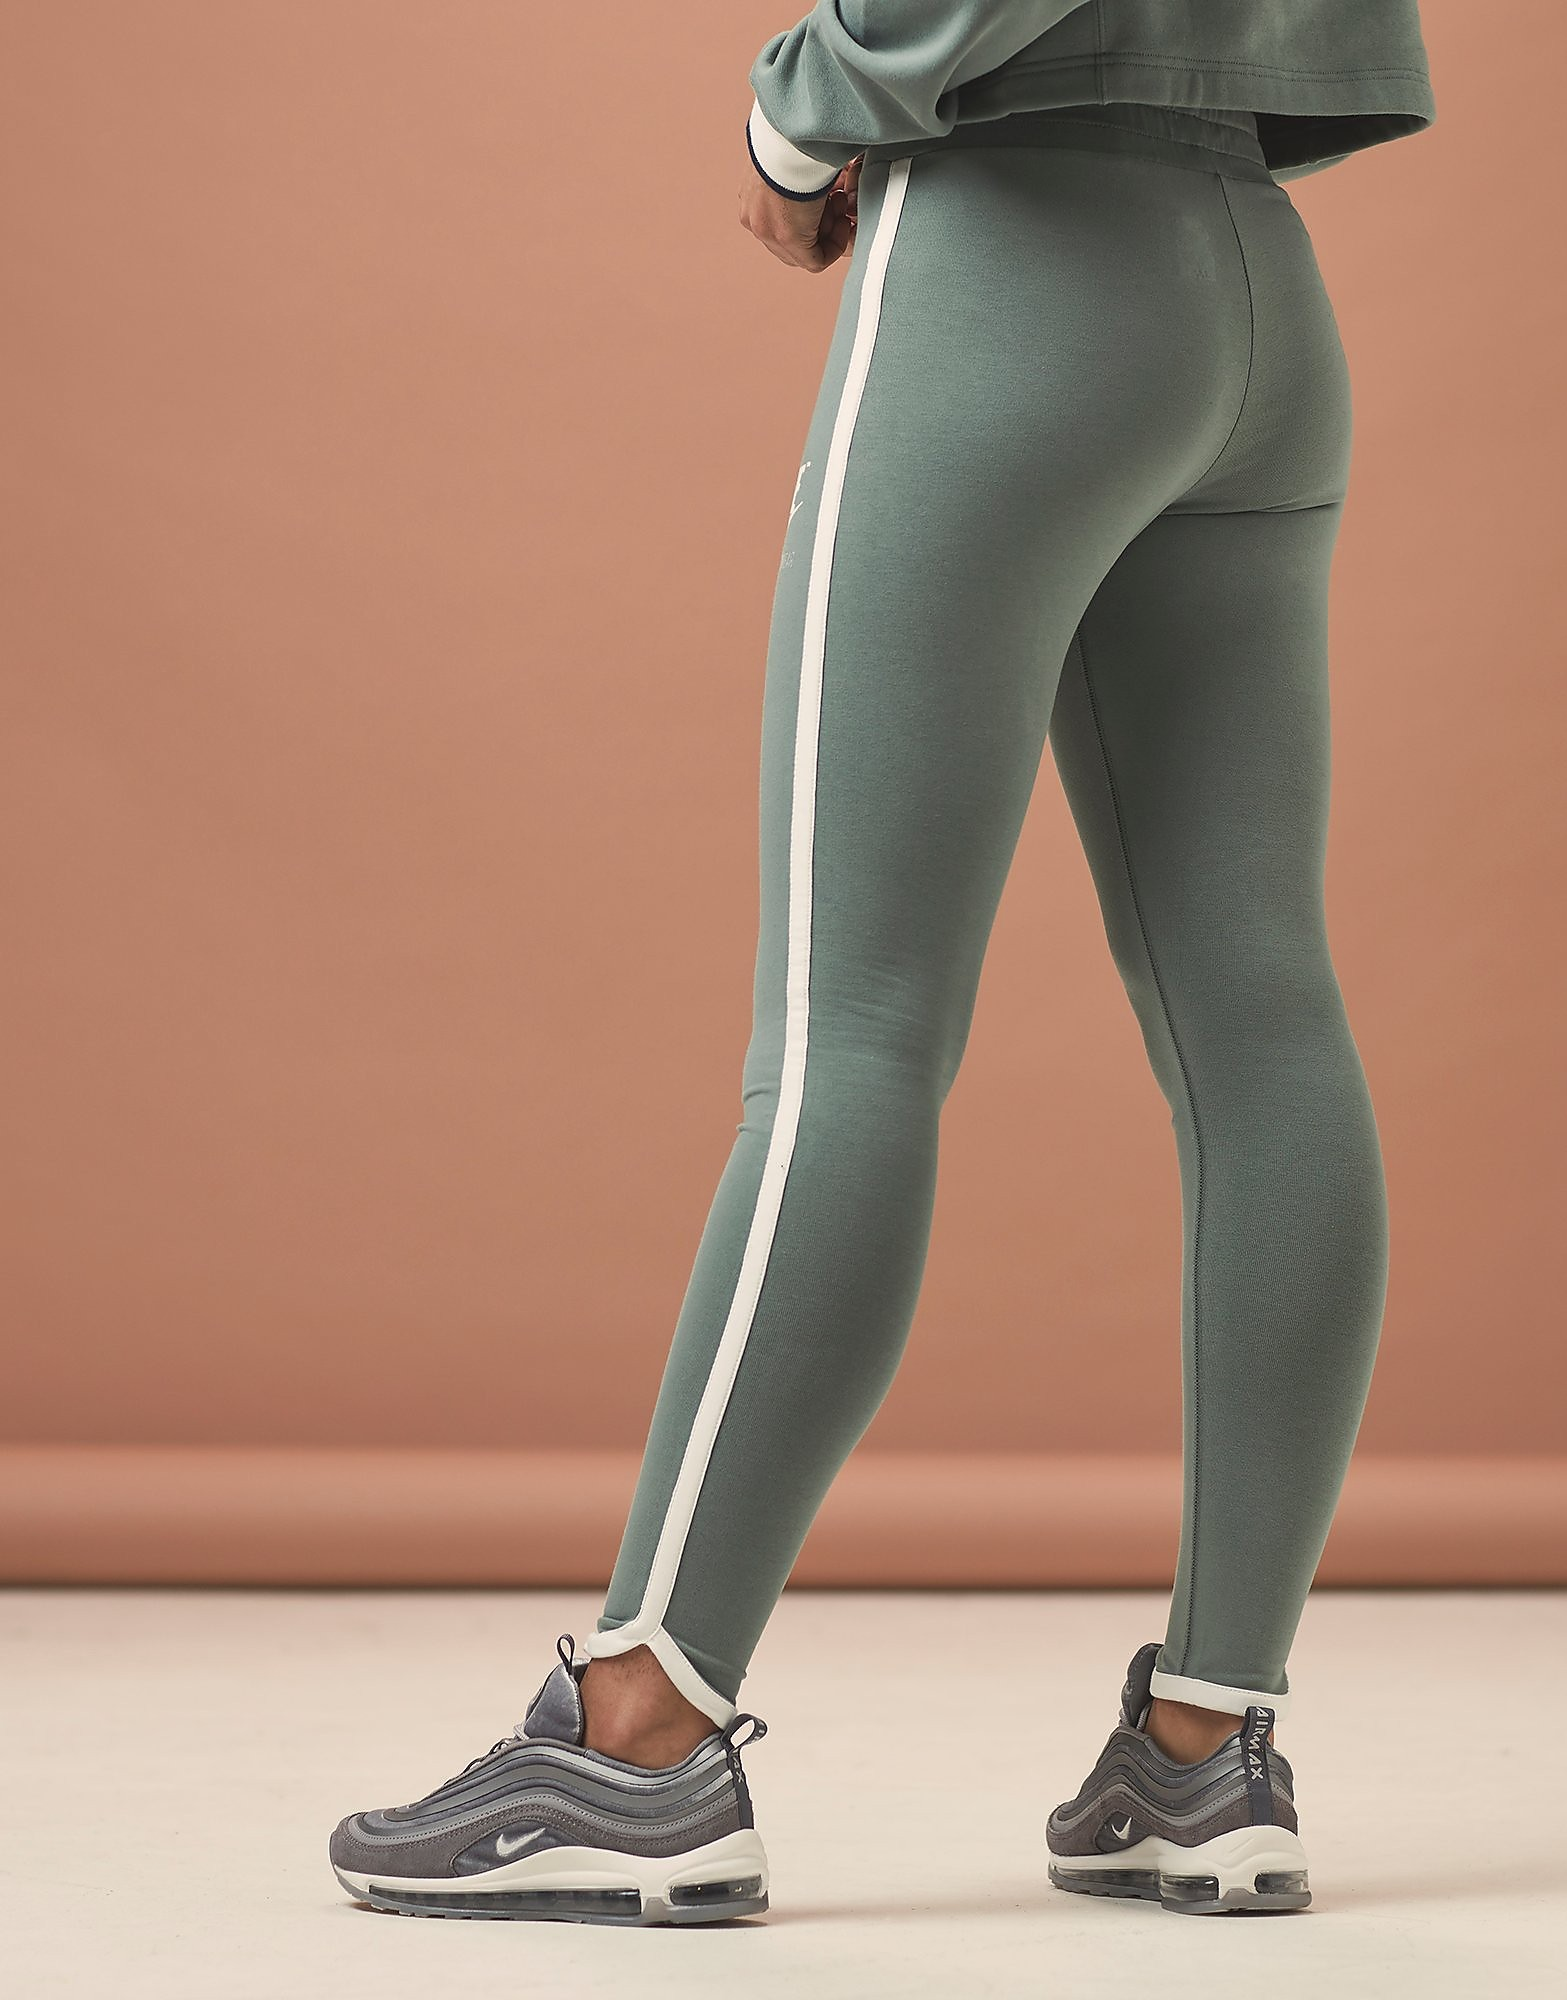 Nike Archive Leggings